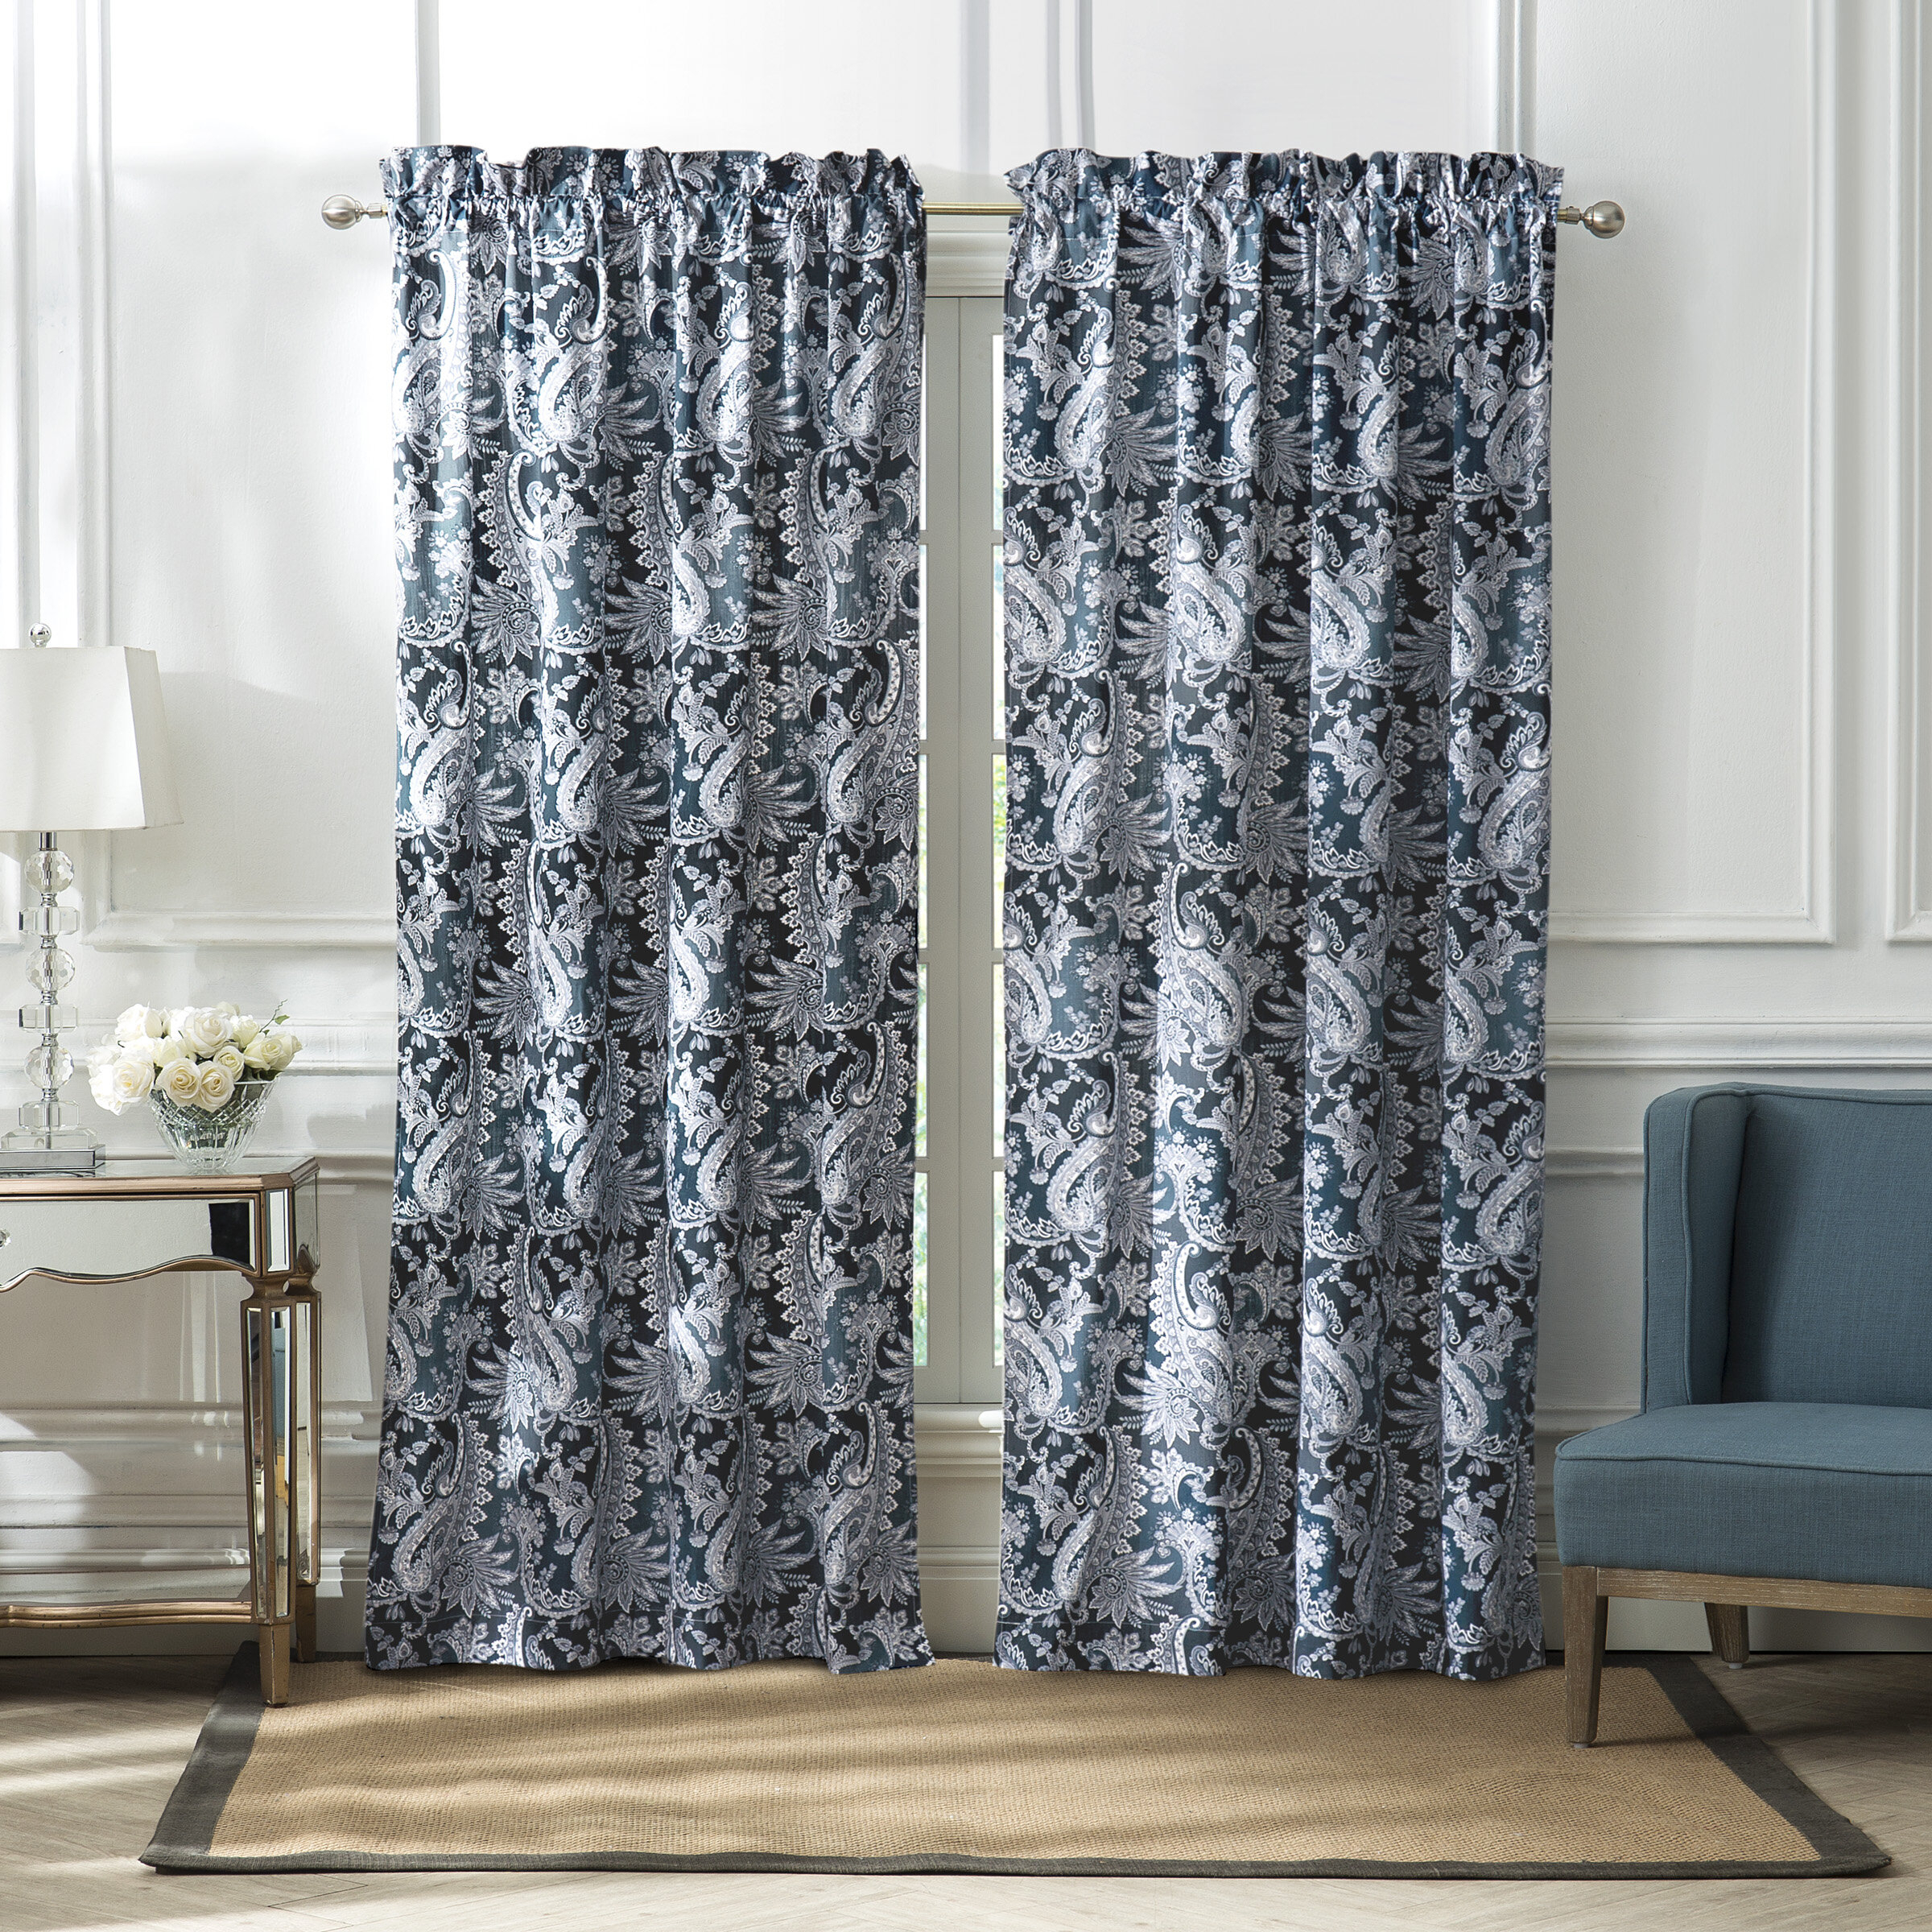 Marquiswaterford Sawyer Floral Blackout Rod Pocket Regarding Thermaback Blackout Window Curtains (View 14 of 30)